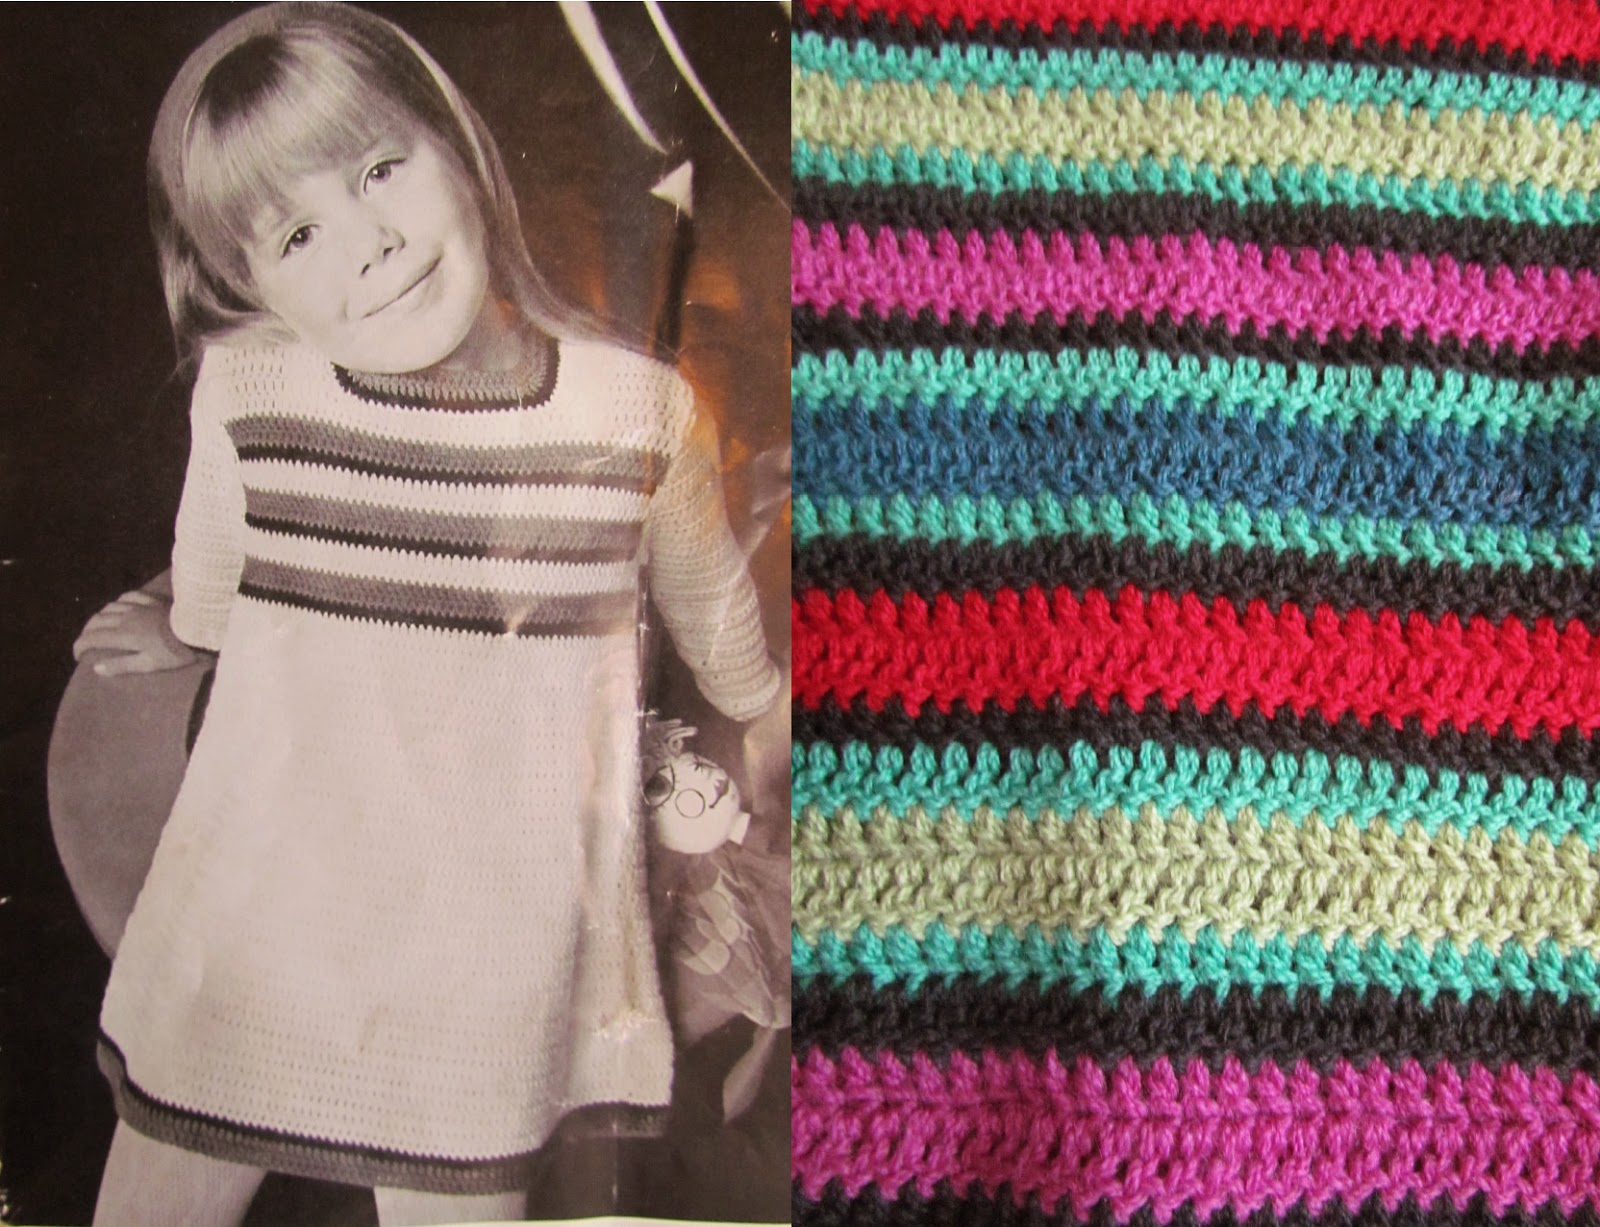 Sister Outlaws May 2014 Wool Ply Conversion Tables I Had Several Balls Of 5 And Thought Stripey Would Be Fun The Dress Is Made From Top Down So Can Add Rows As Girls Get Taller